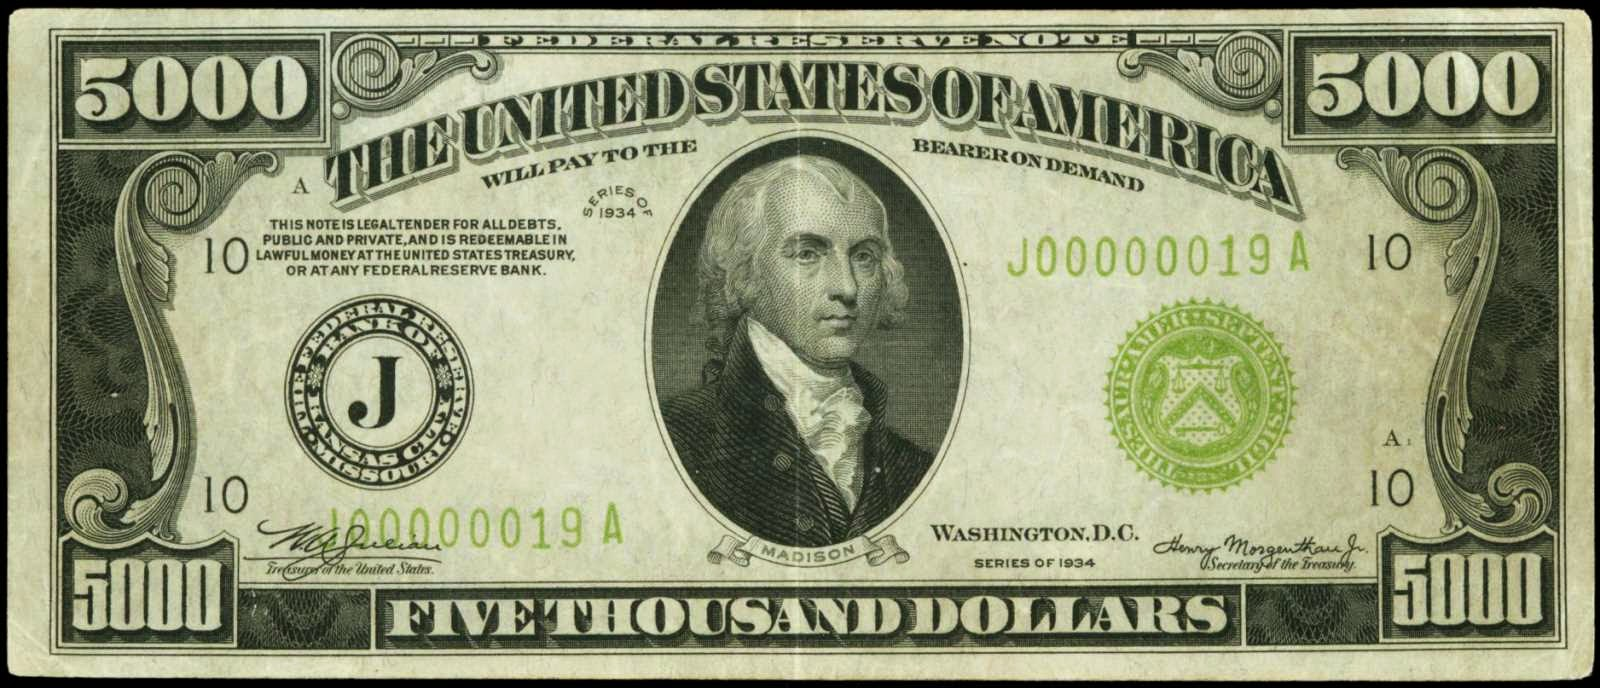 Http Www Worldbanknotescoins Com 2014 10 Us Paper Money Five Thousand Dollar Federal Reserve Note Html